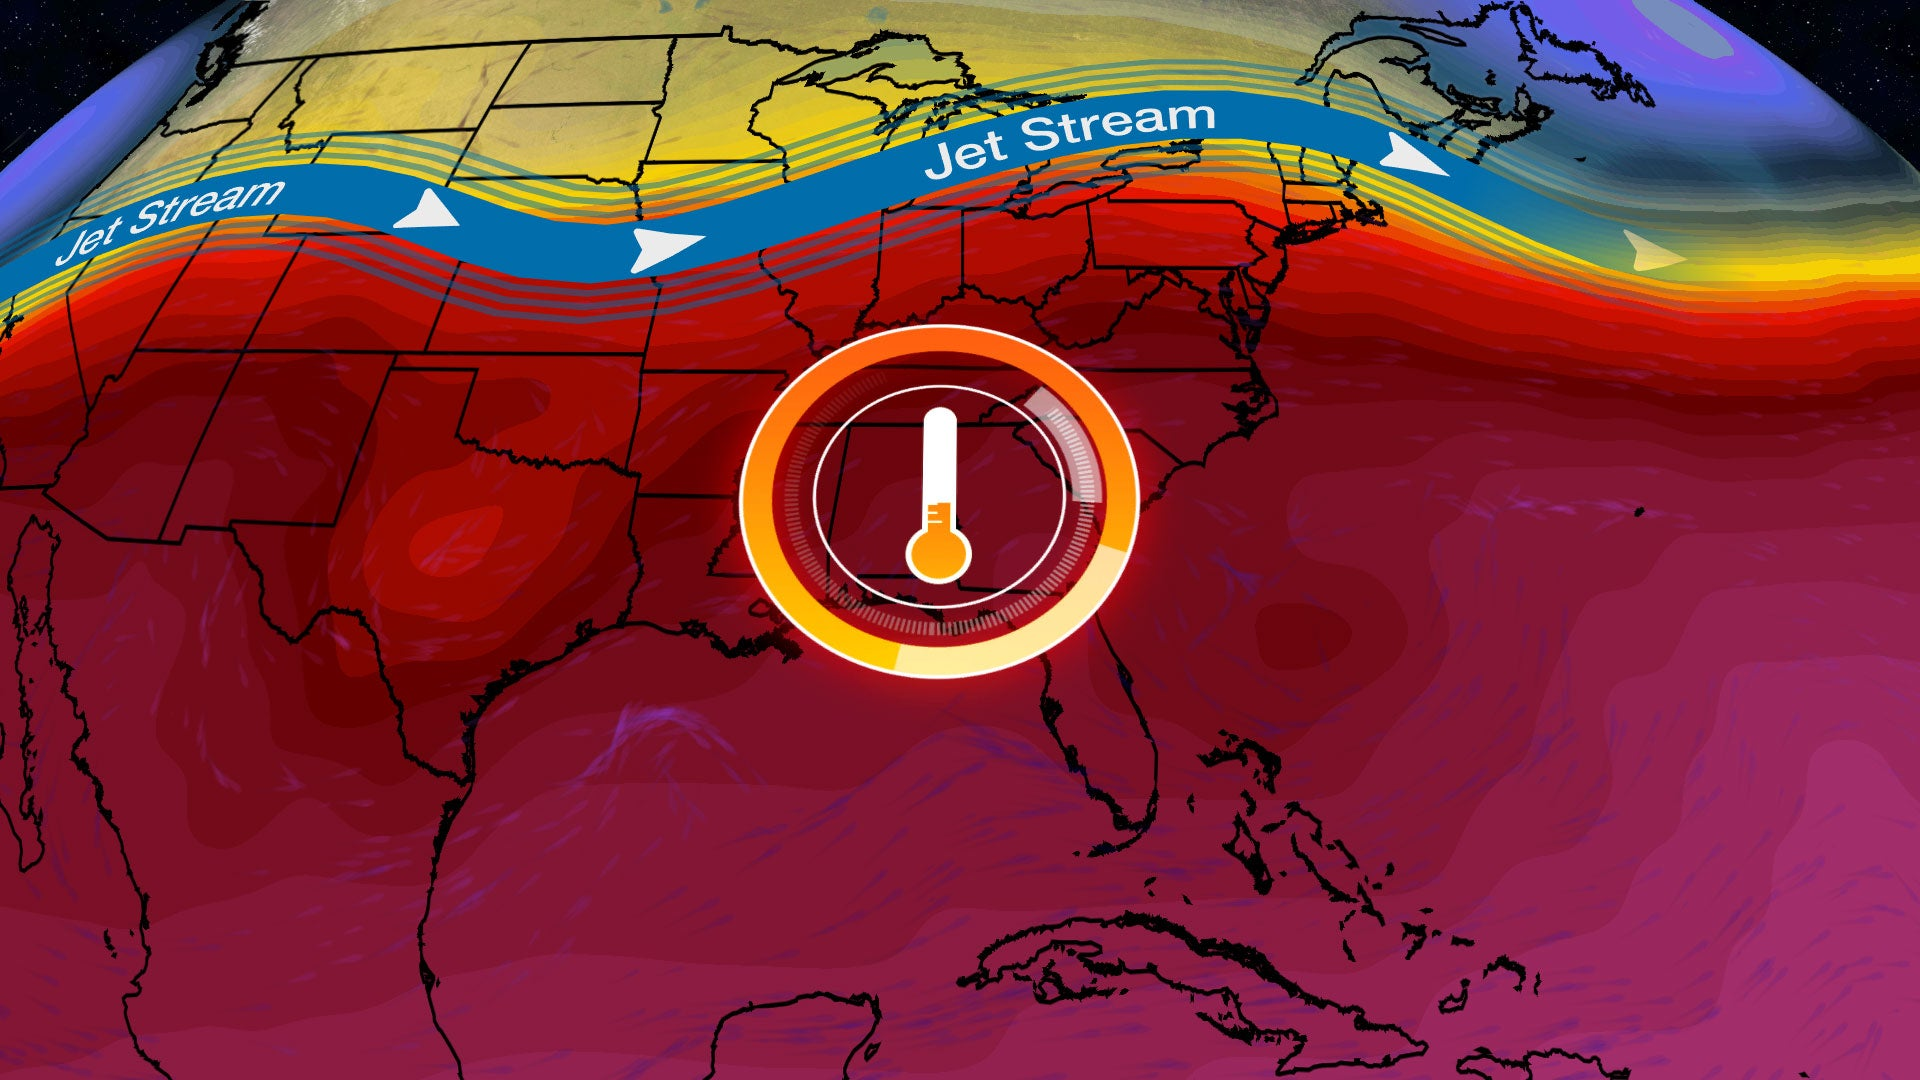 Warmup This Week in Midwest, South and East Could Last a While